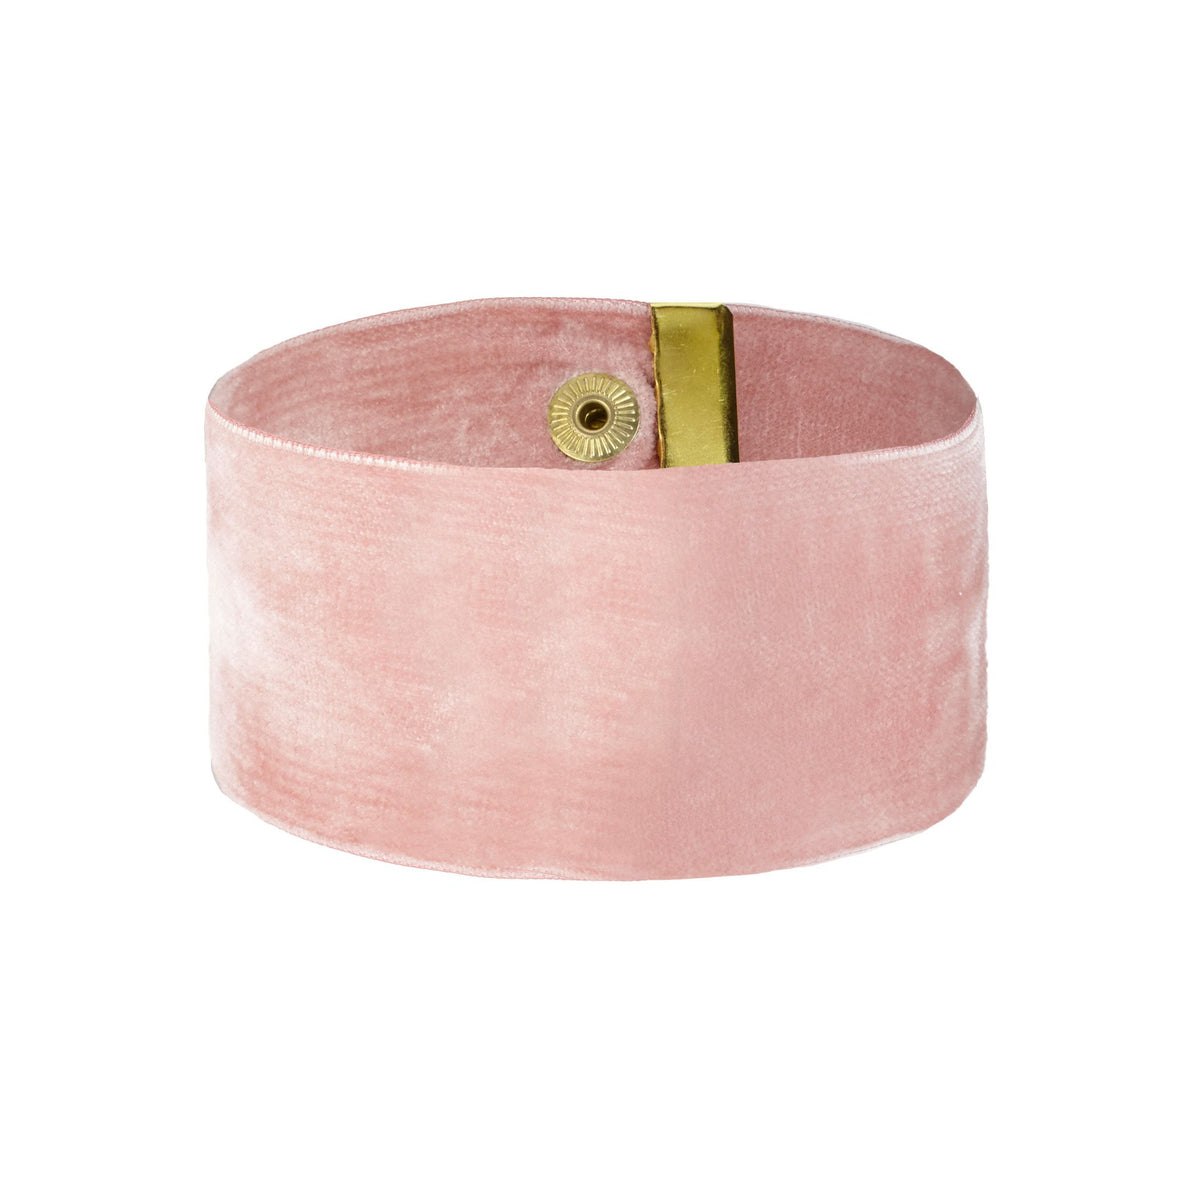 Ambrosia Velvet Choker - ARE YOU AM I - 4**blush